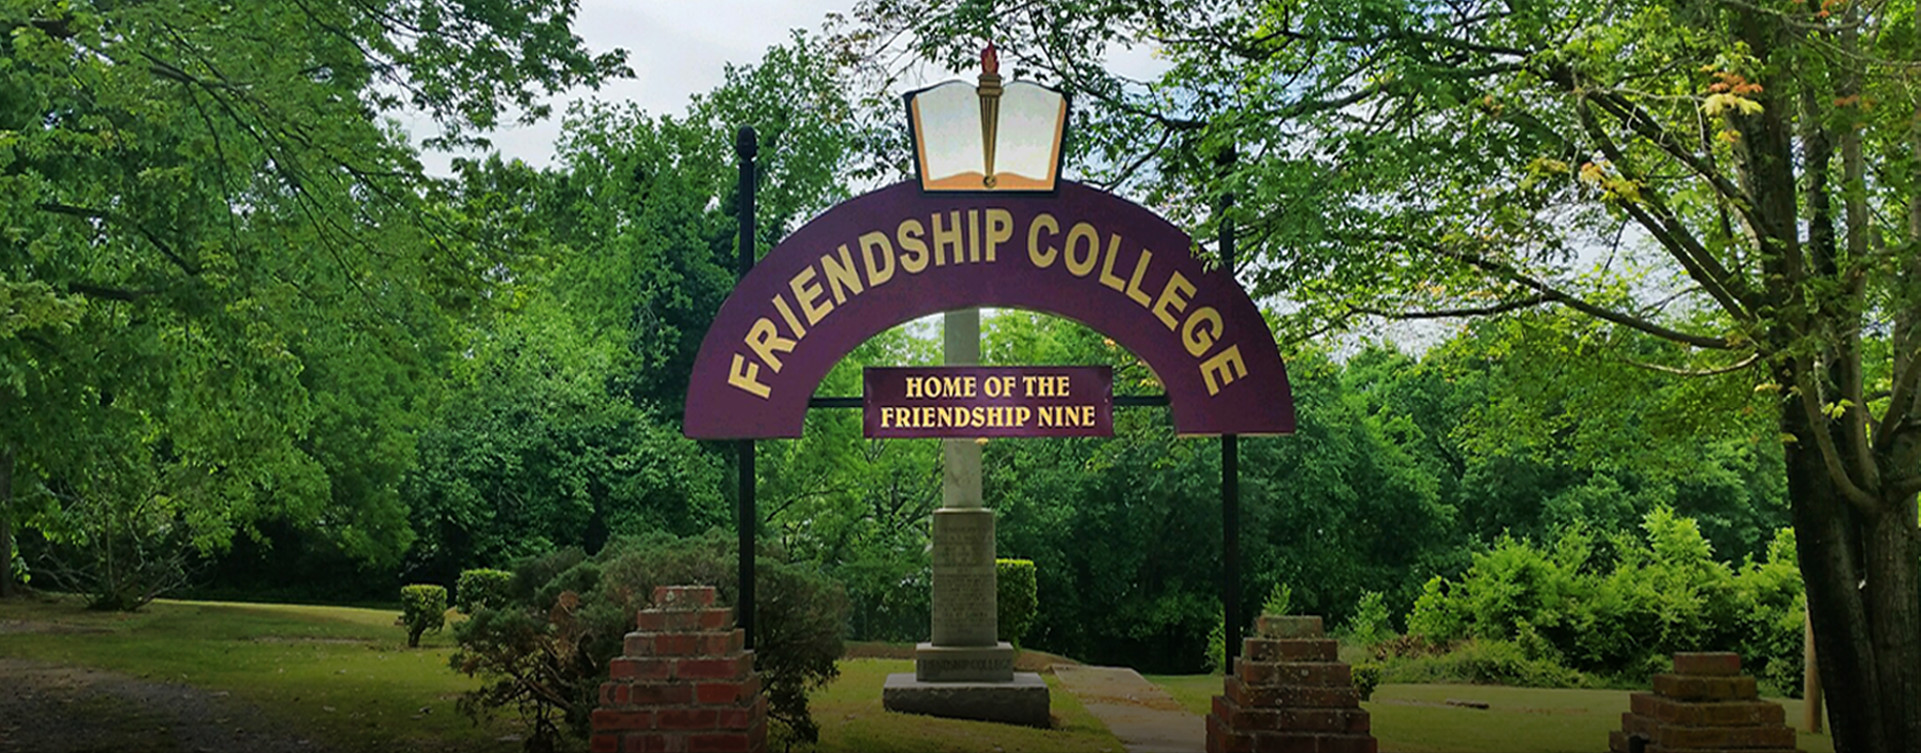 friendship college